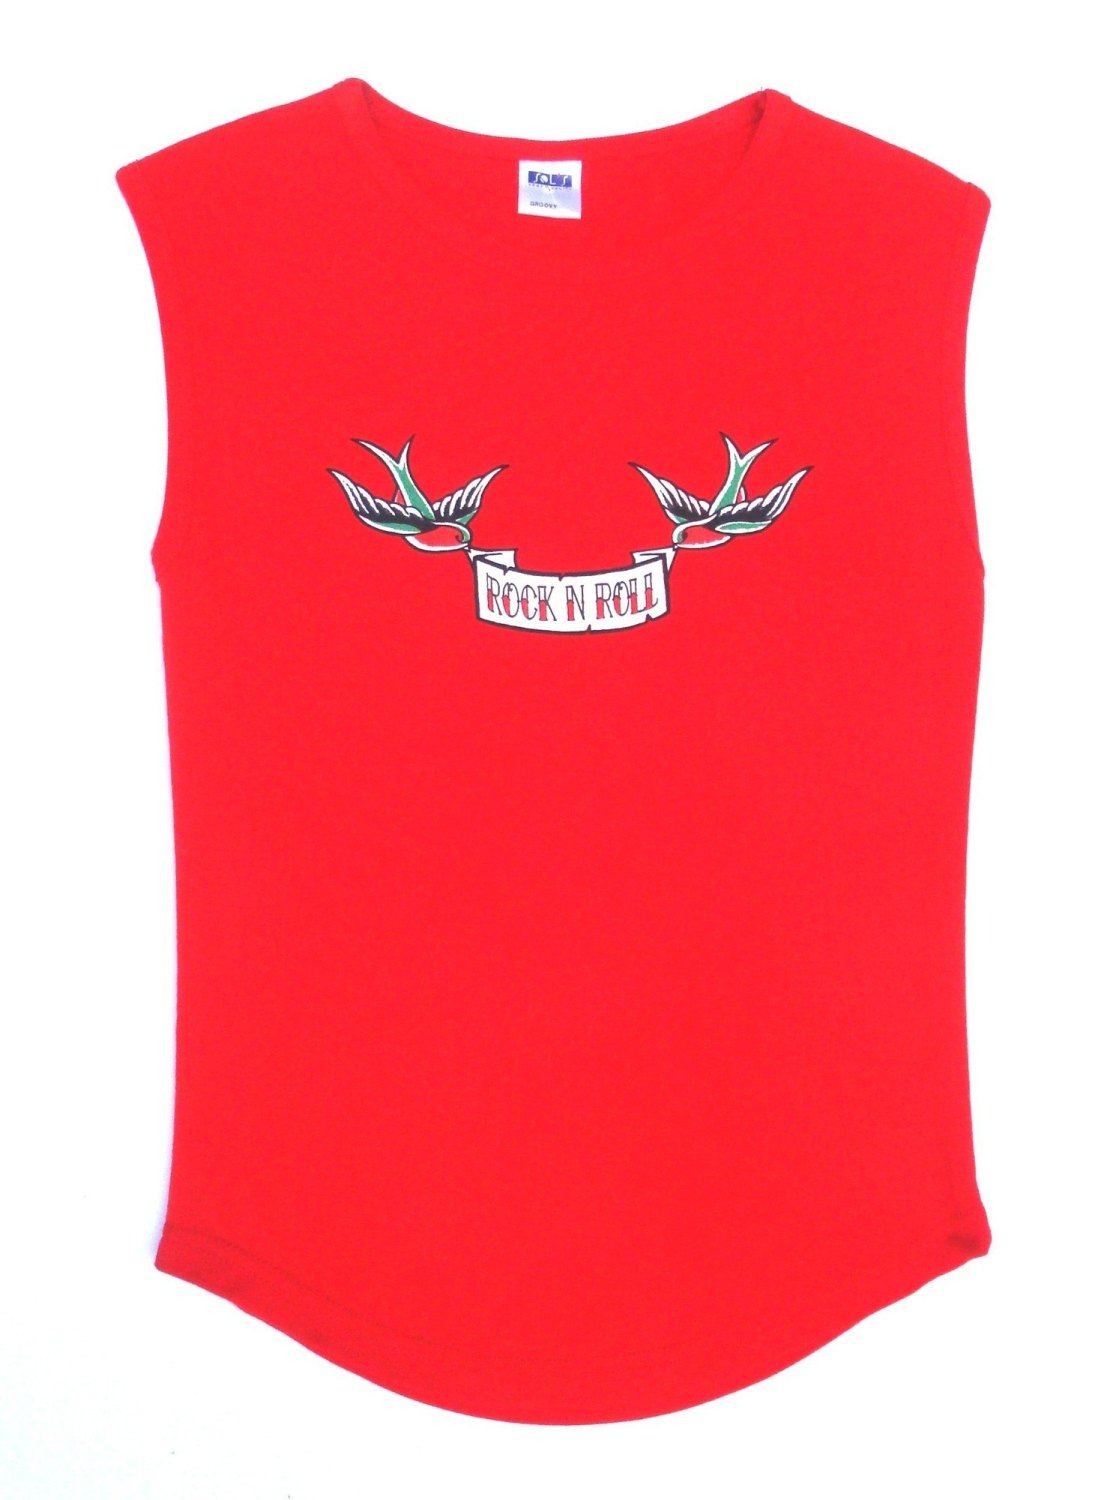 Rock N Roll Suicide Rock N Roll Swallows Red Sleeveless Top Small